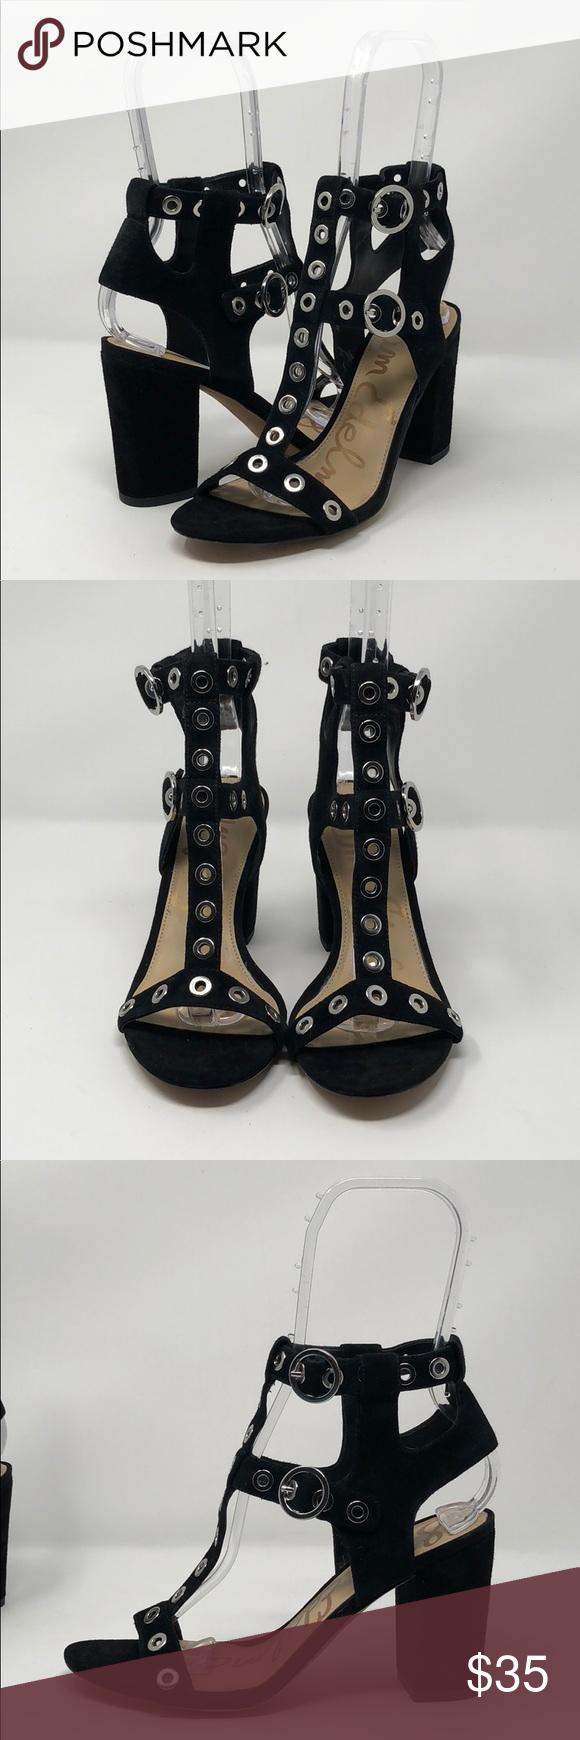 5fce3a3b3561d NWOT Sam Edelman Women s Eyda Dress Sandal Shoes are new. - Heels are  approximately 3.25